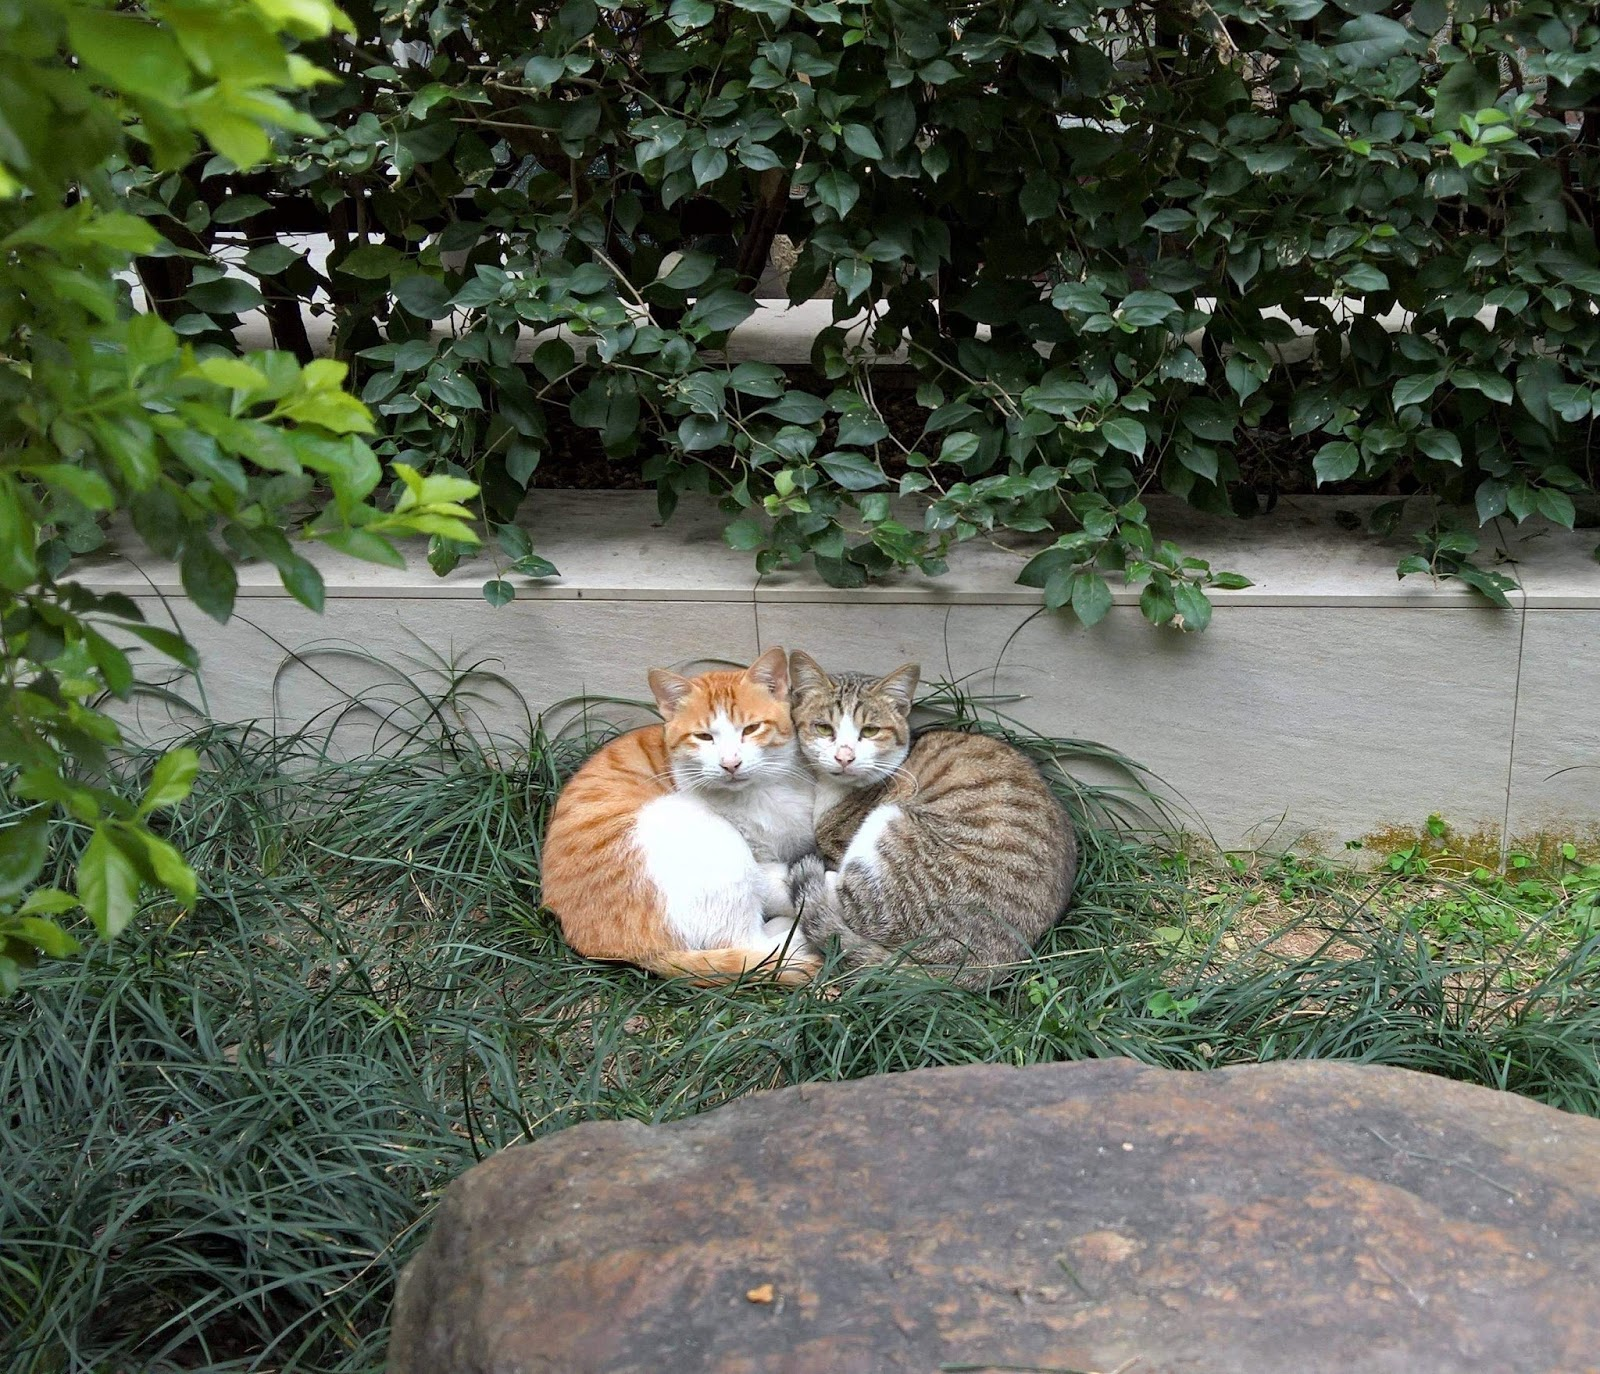 Funny cats - part 276, funny cat image, best cat photo, cat pictures